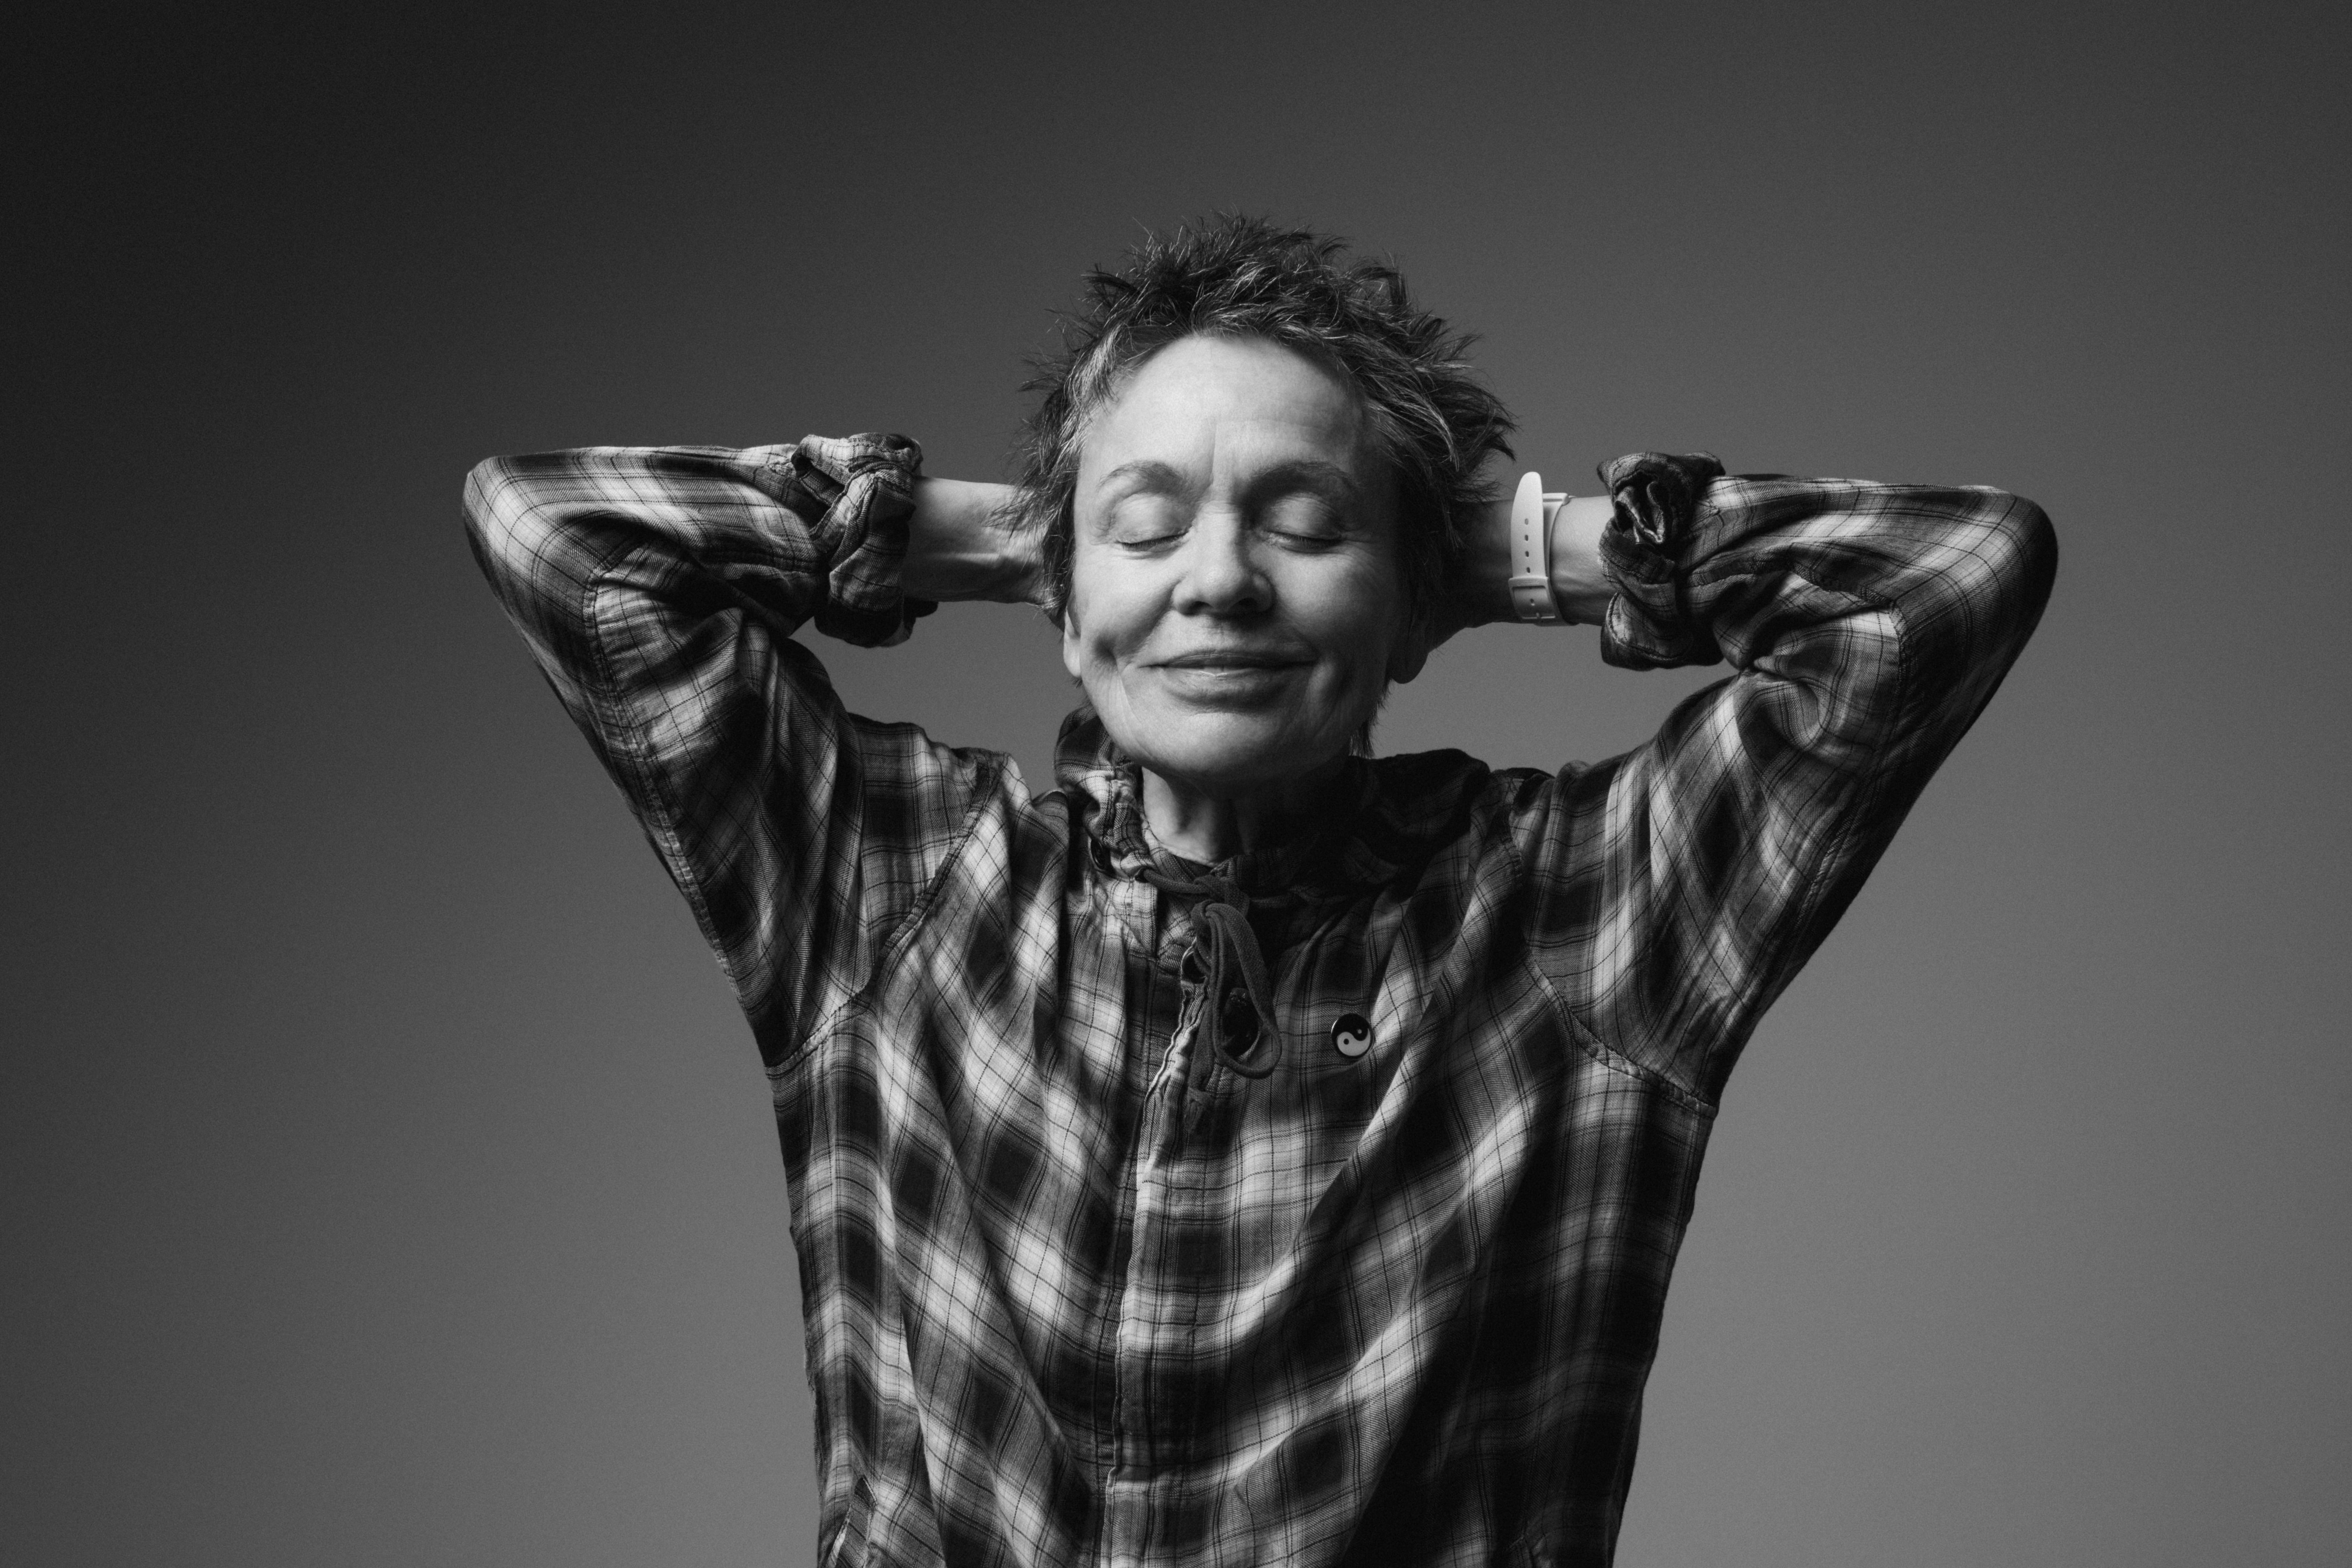 Black and White photo of Laurie Anderson